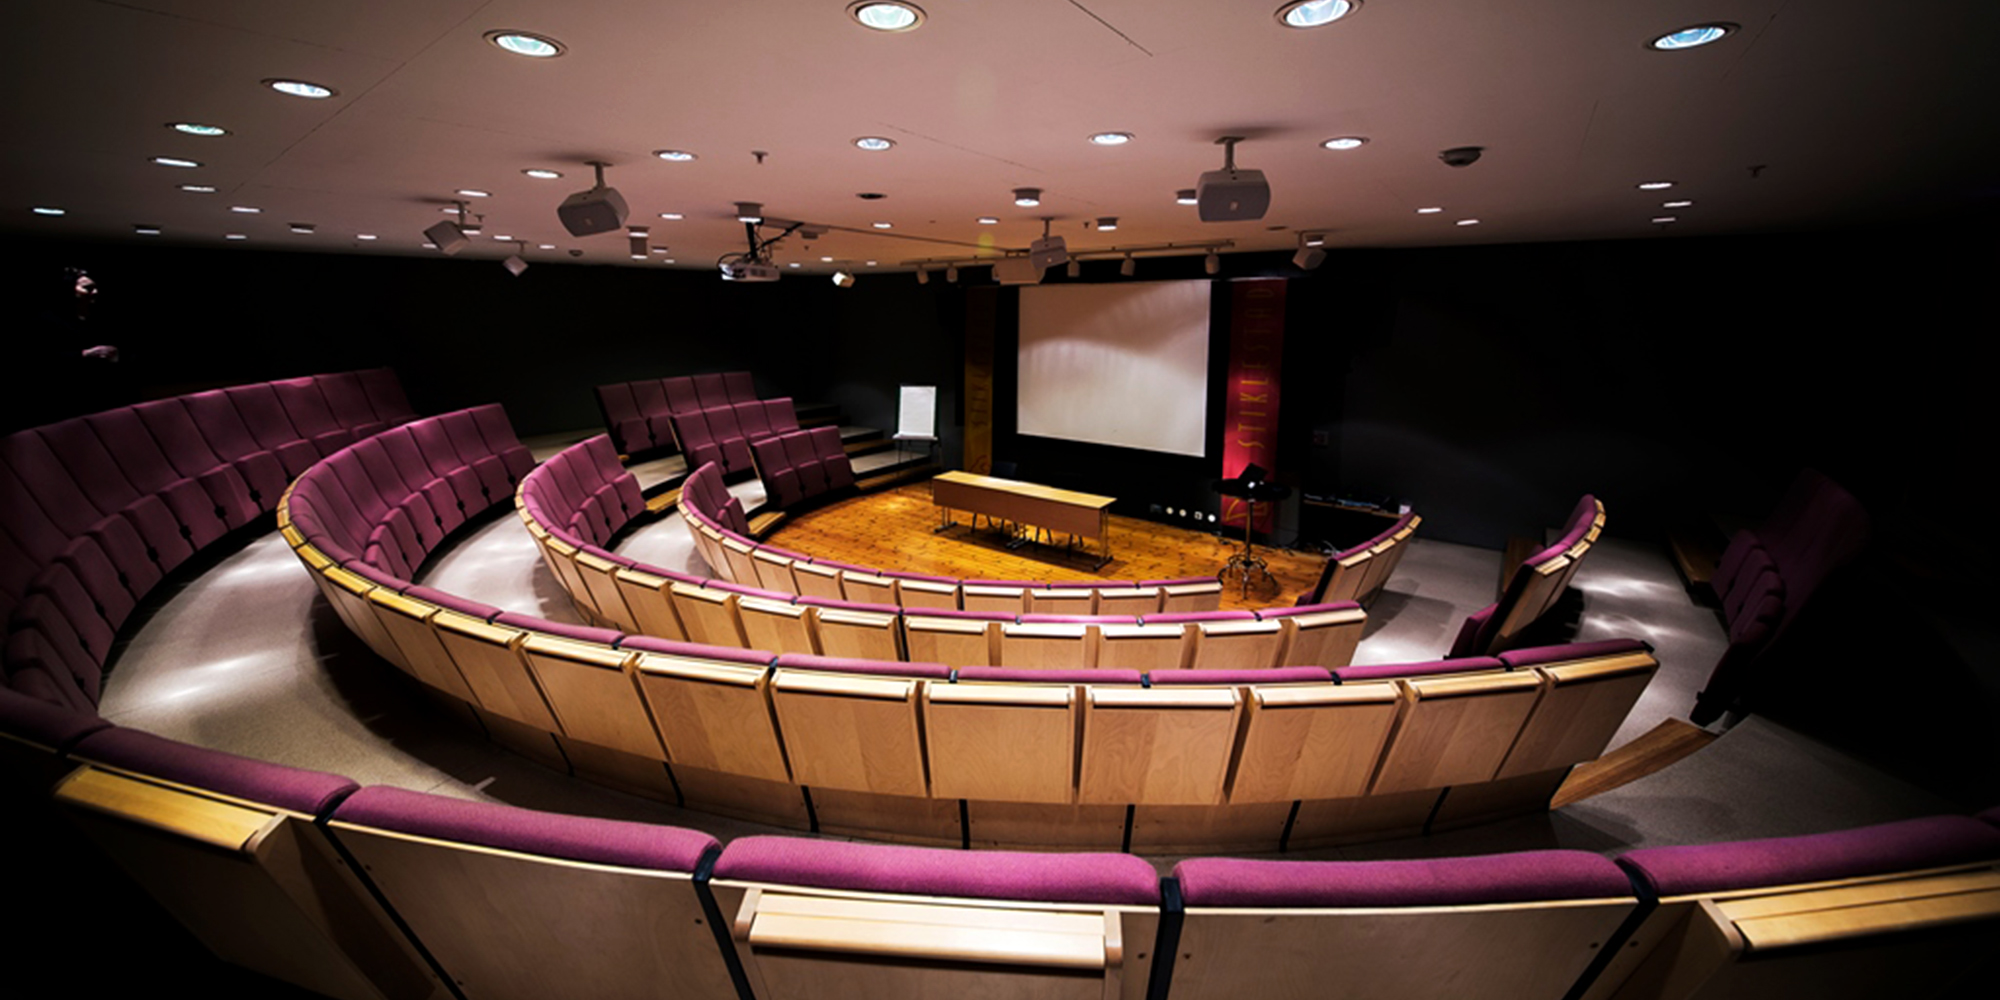 Stiklestad Hotell - The Auditorium. Copyright: Stiklestad Hotell